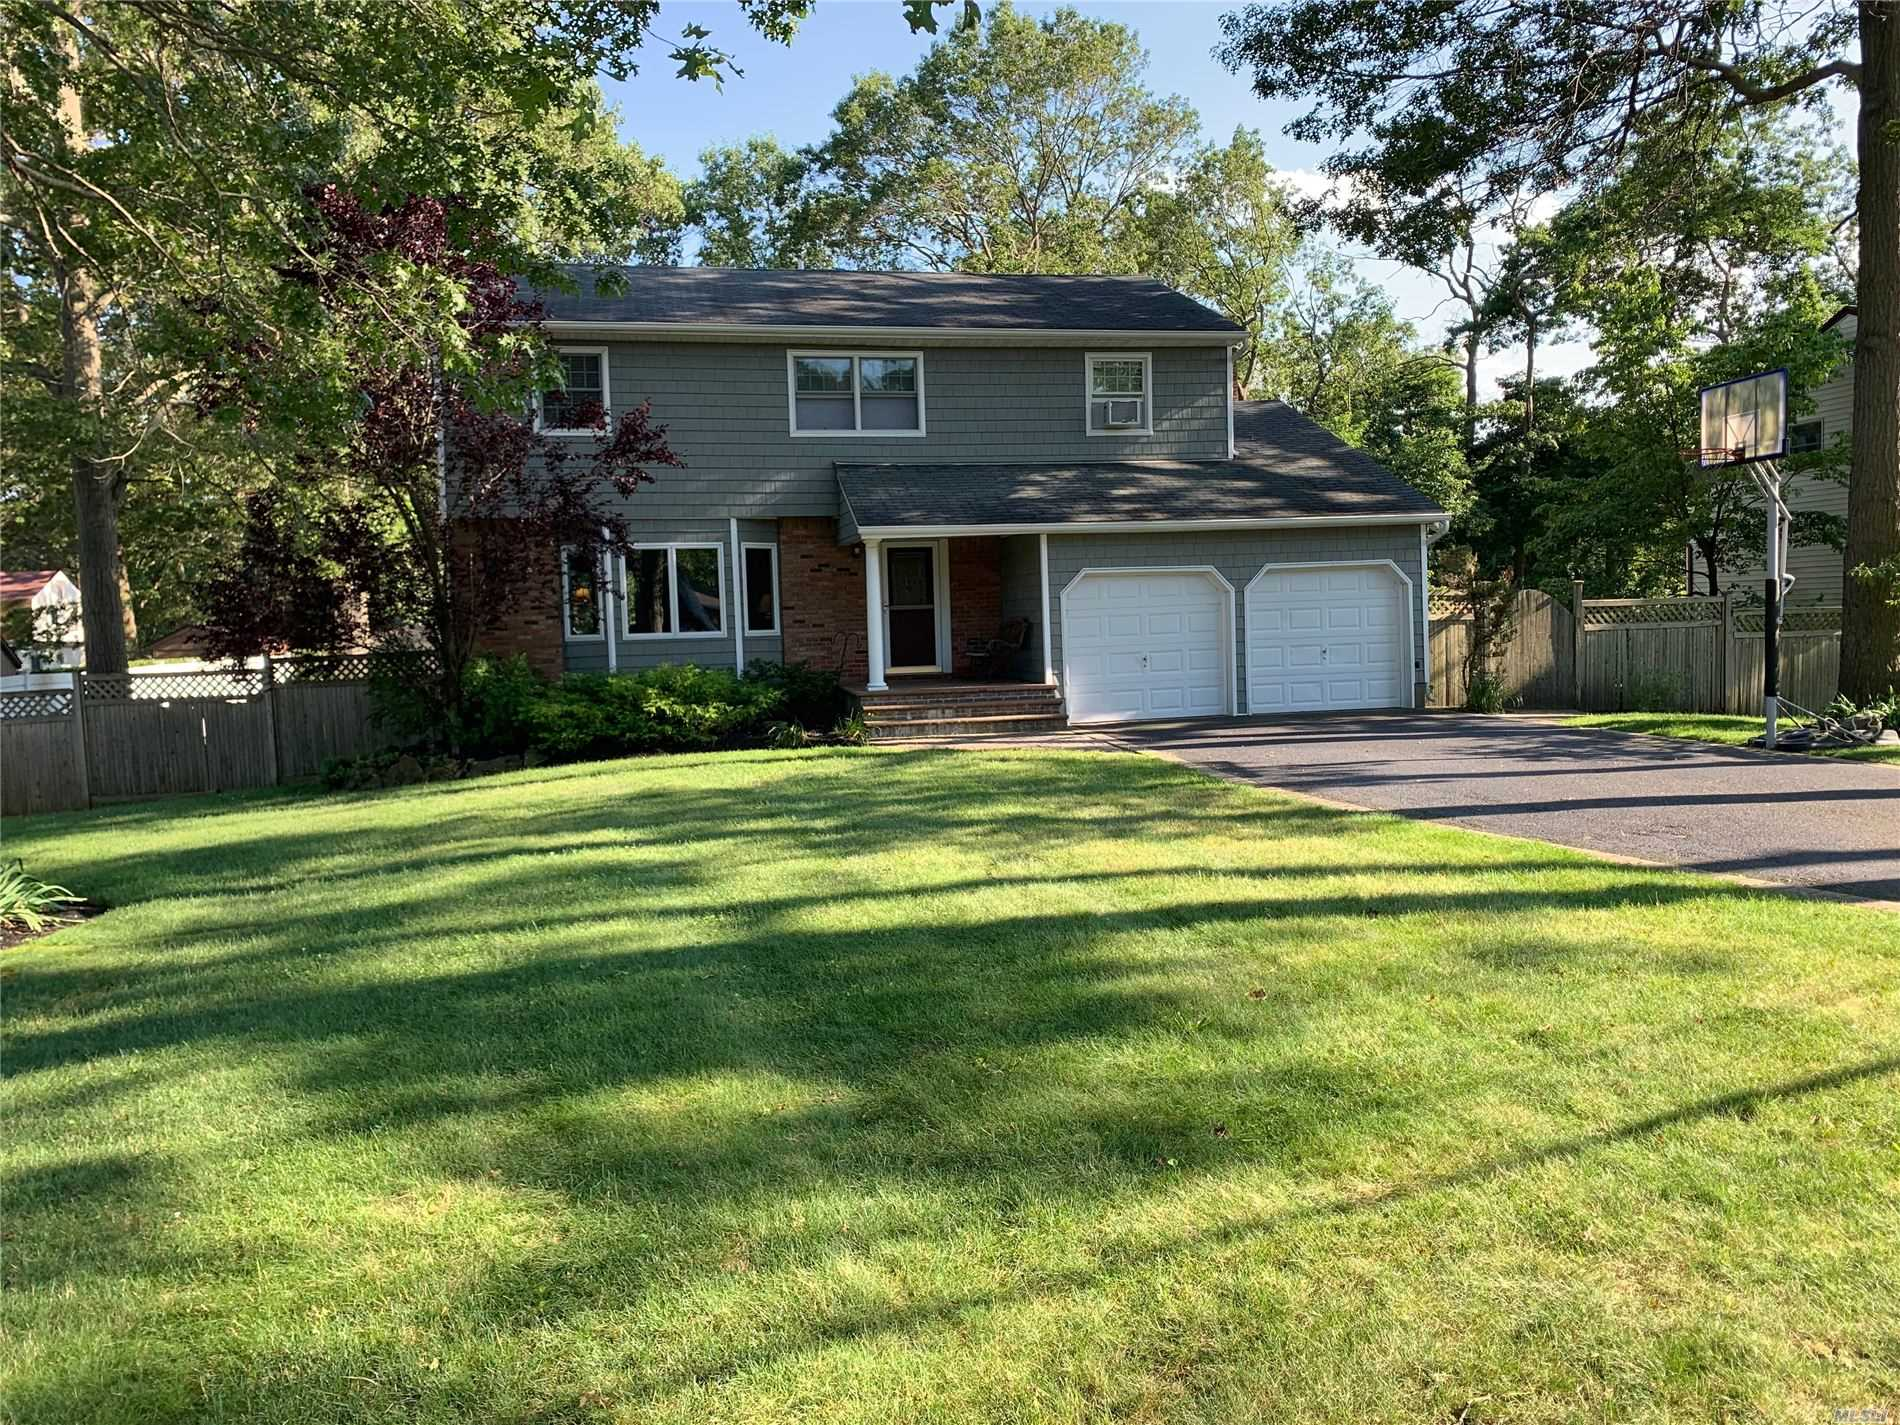 Listing in Lake Grove, NY